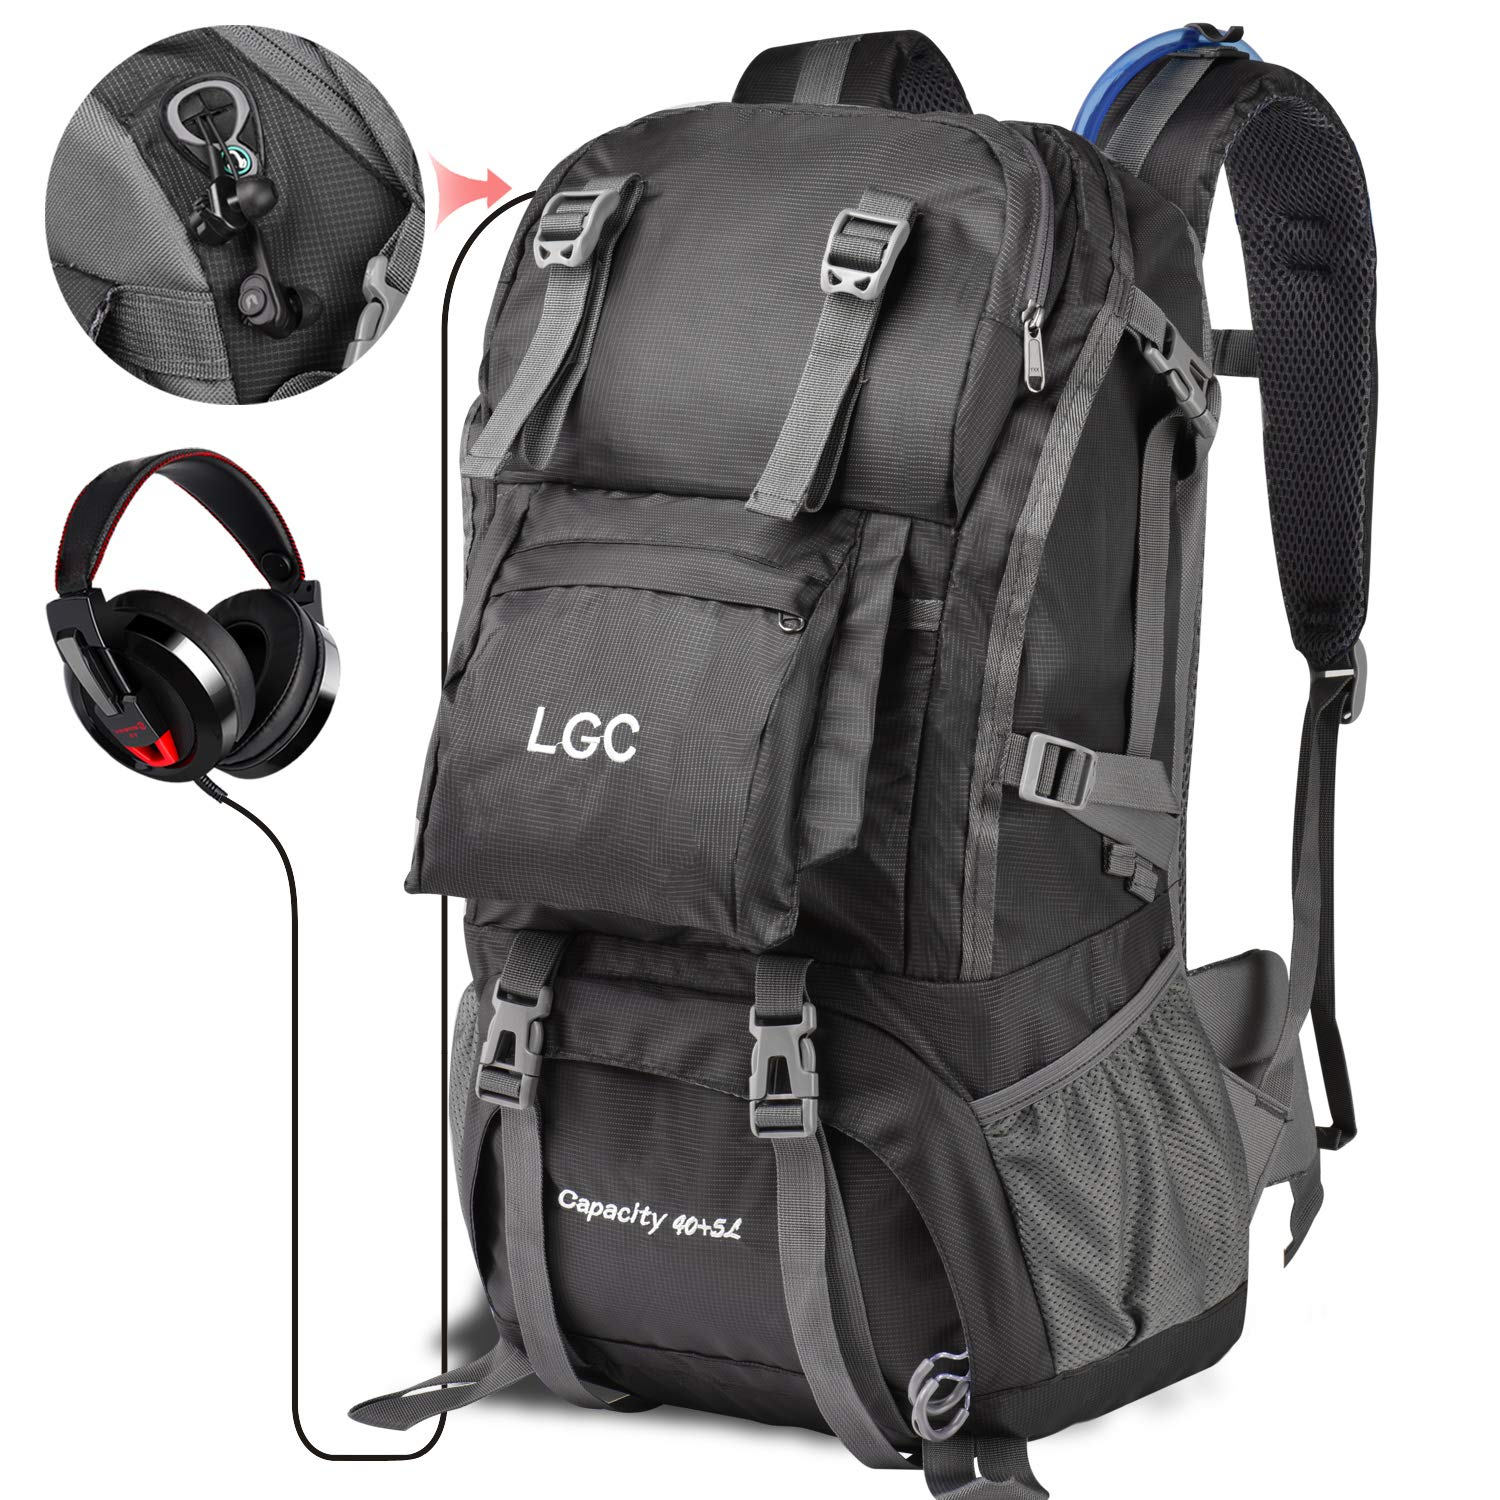 LGC Products Travel Backpack, 40L Waterproof Hiking Backpack for Men & Women, Camping Backpack with Headphone Interface & Rain Cover for Hiking, Traveling & Camping